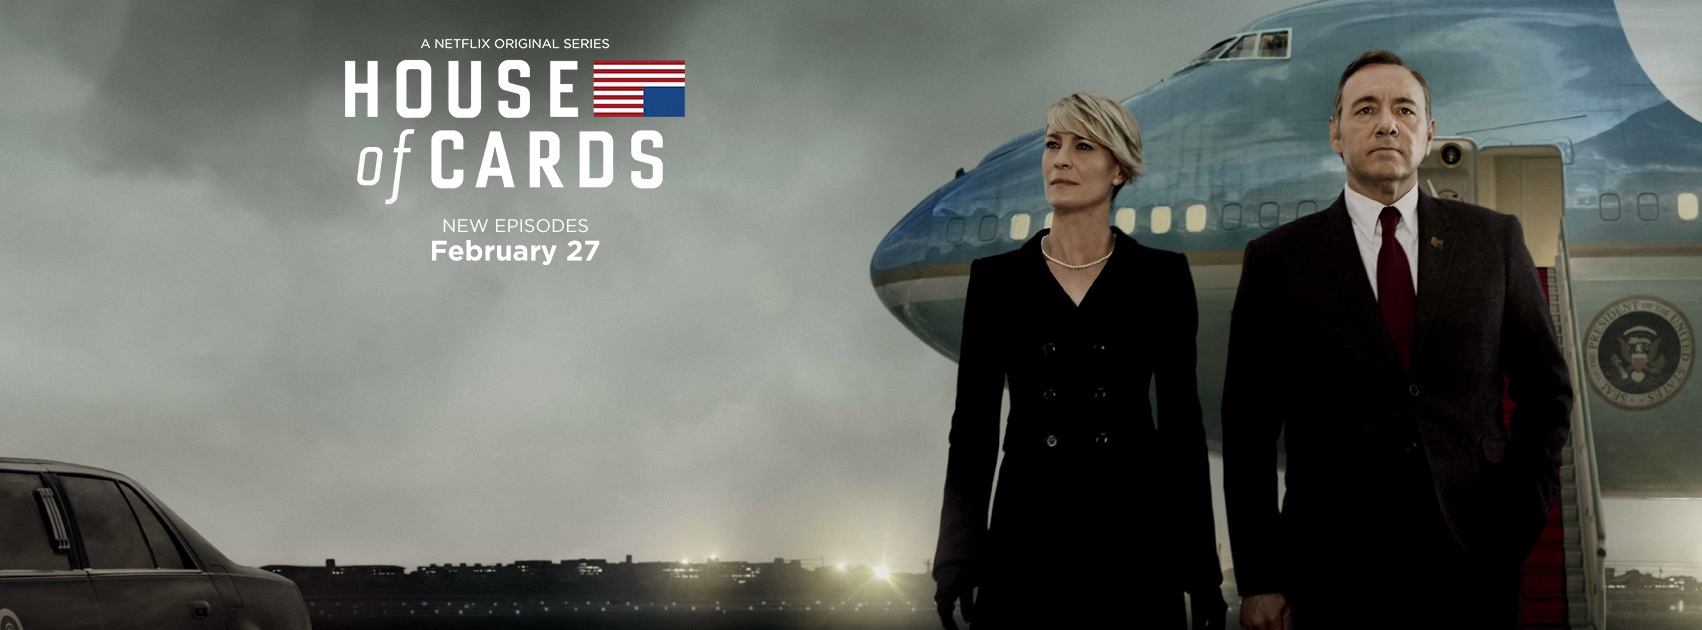 Wiki House Of Cards   Image House Of Cards Season 3 Banner Jpg House Of  Cards